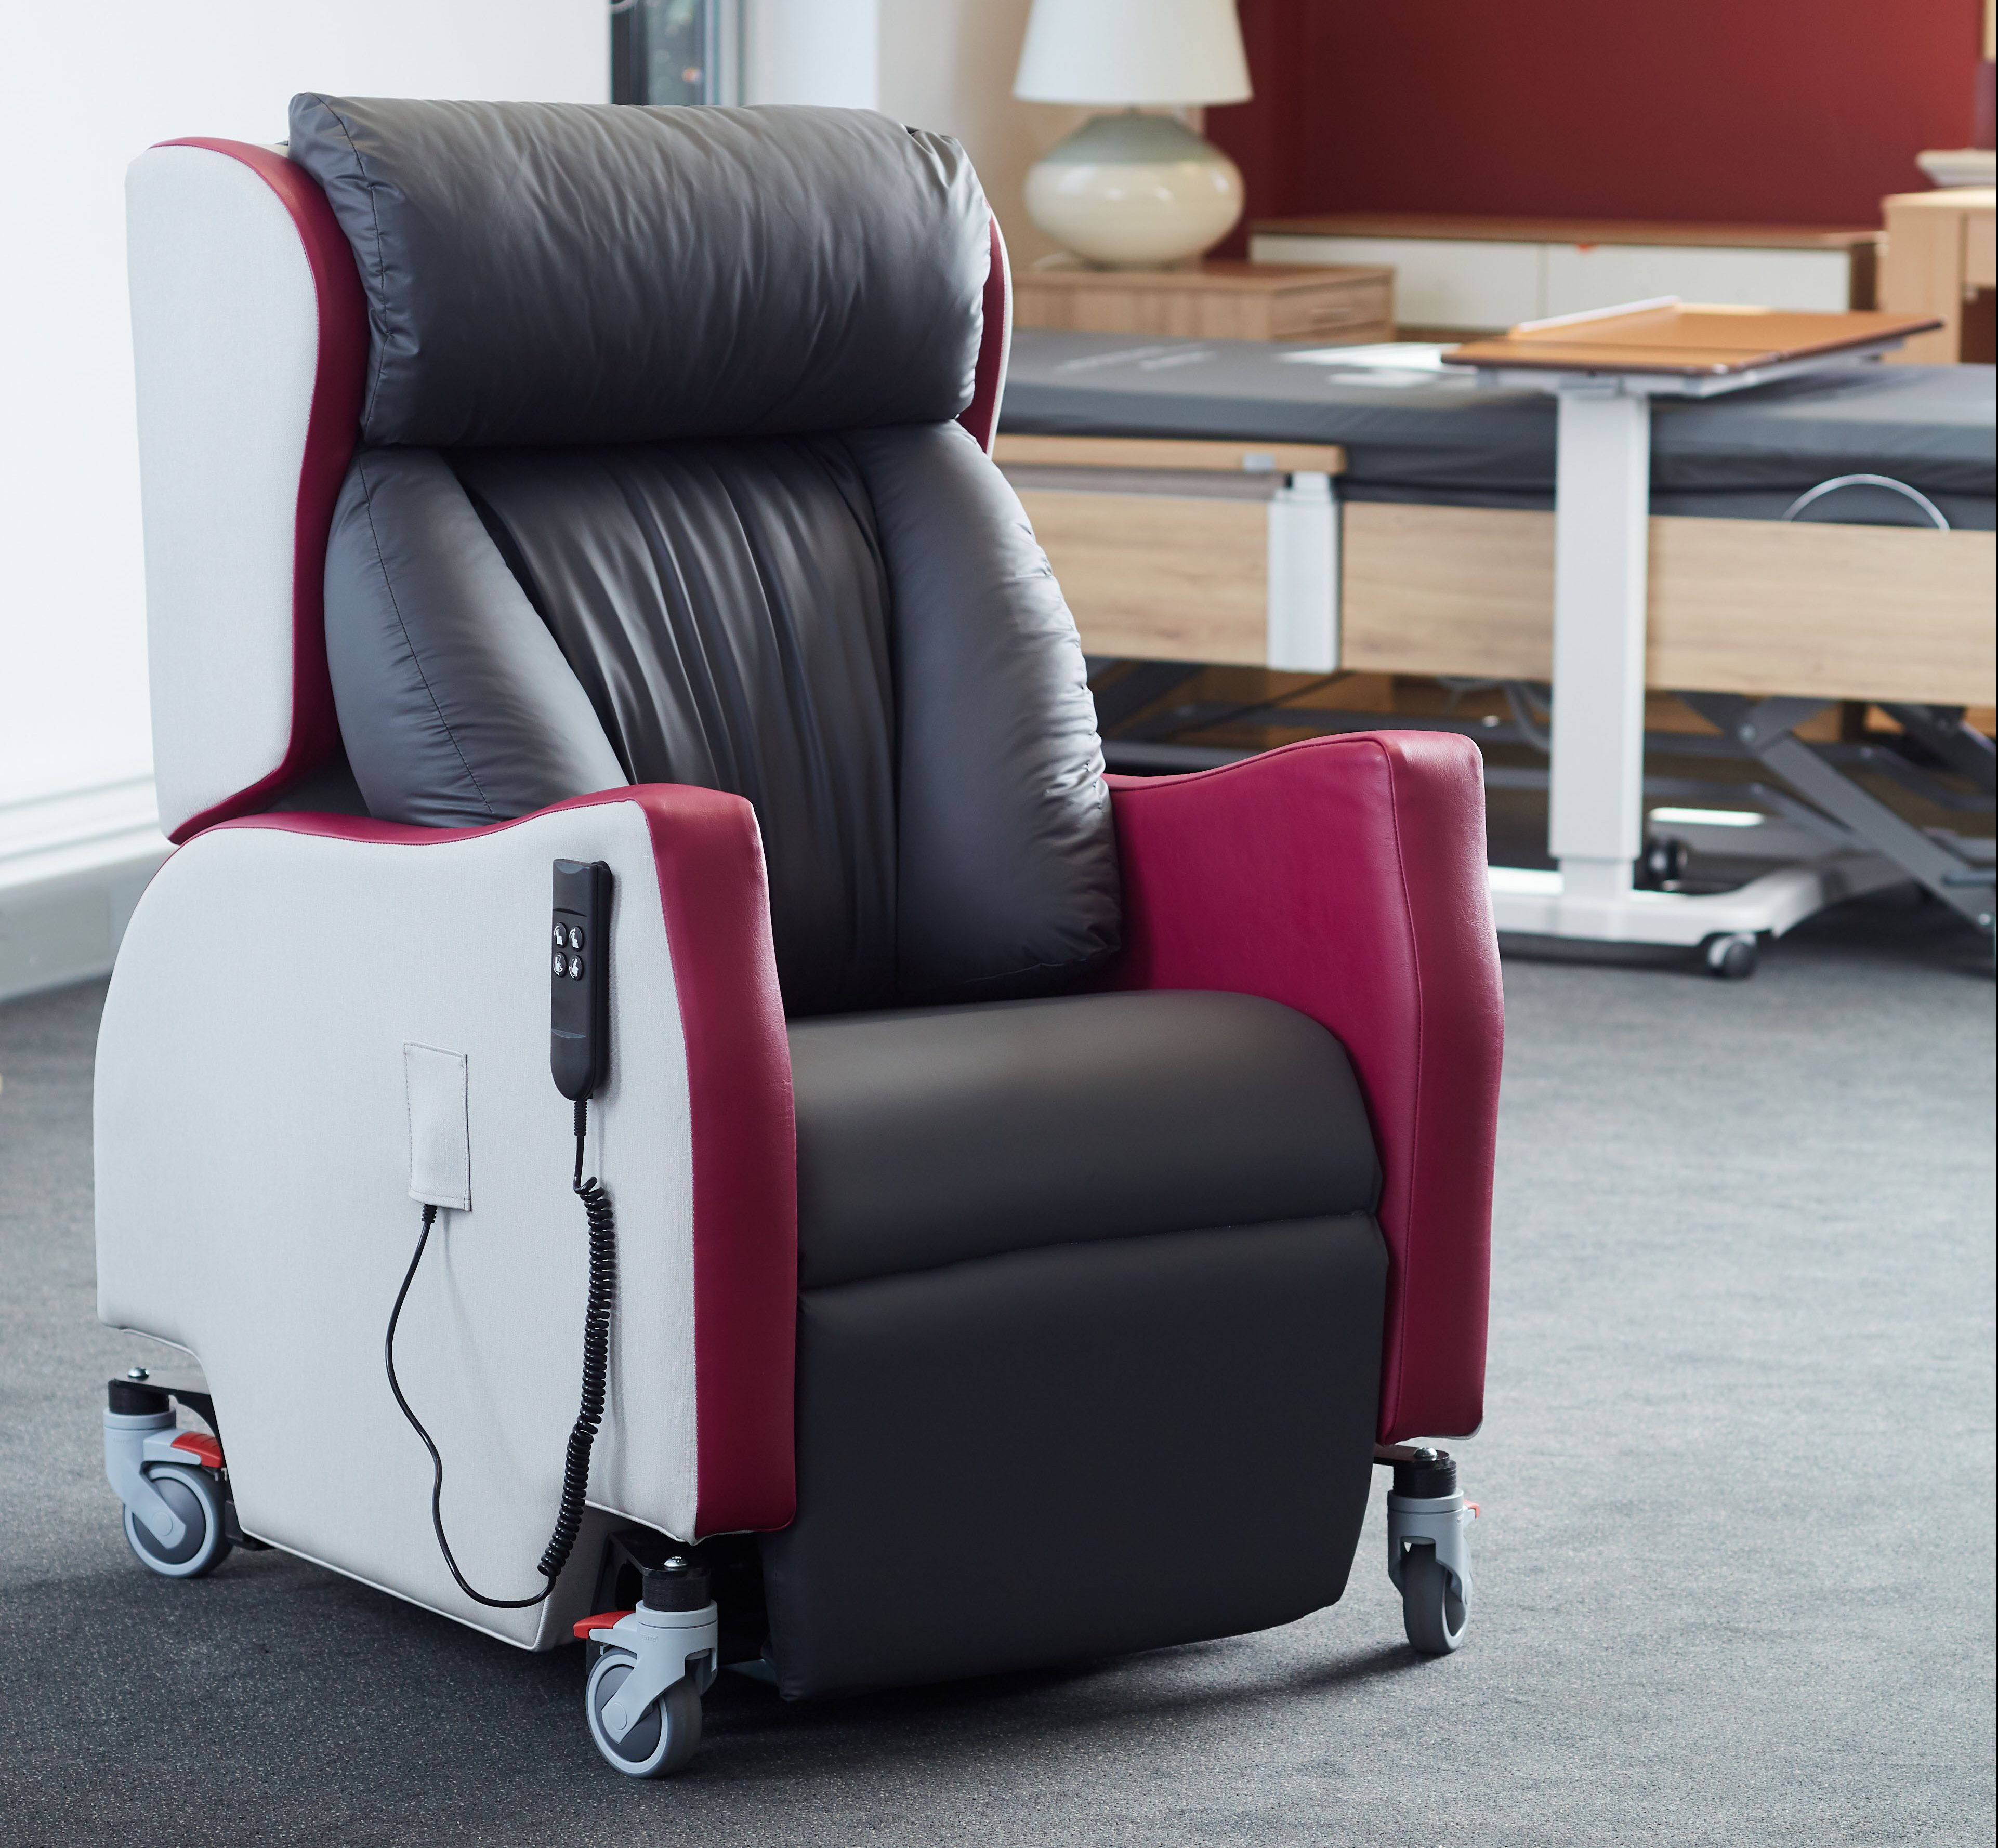 A rise and recline chair fitted with magnets to reduce cross-infection